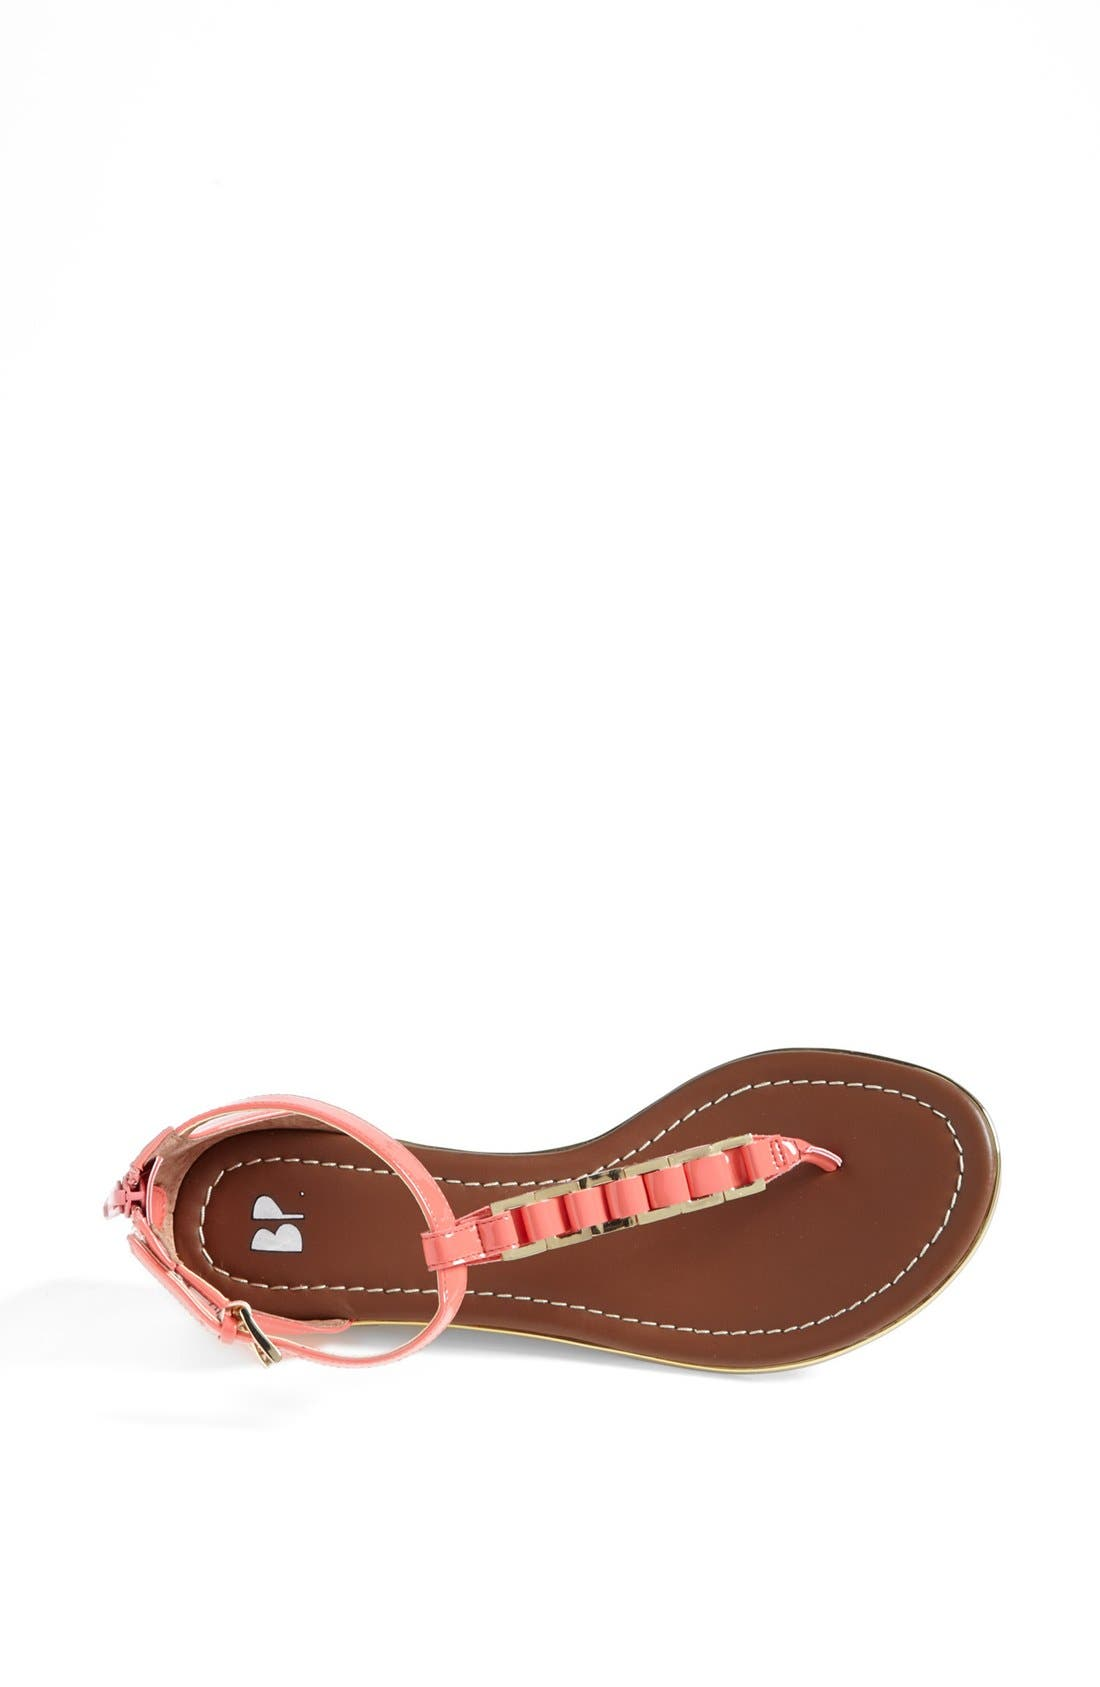 'Bonsai' Sandal,                             Alternate thumbnail 3, color,                             Coral Patent